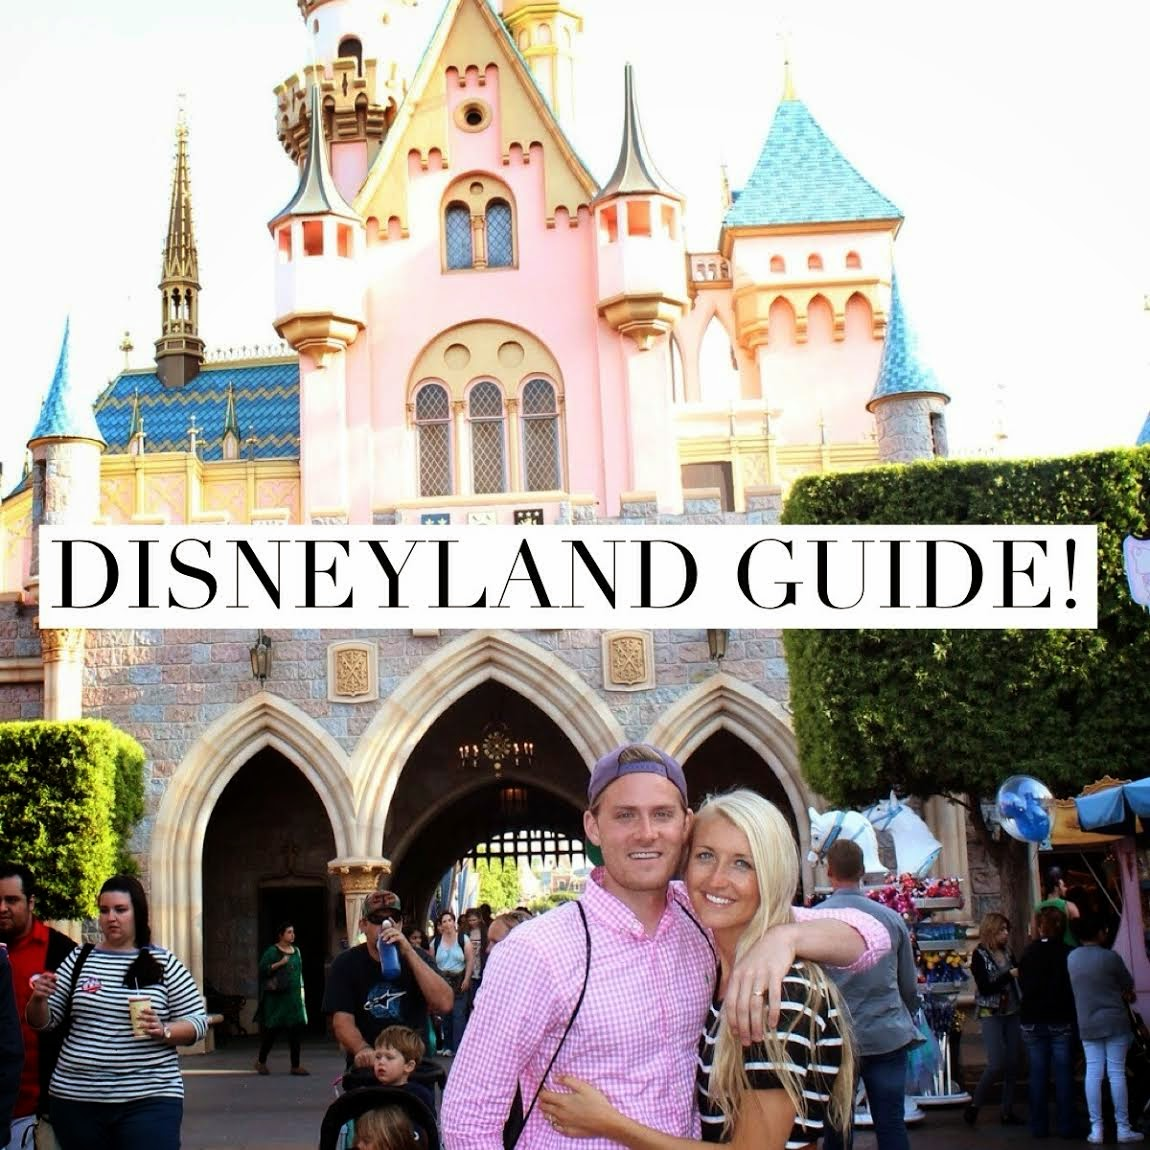 guide to DISNEYLAND!!!